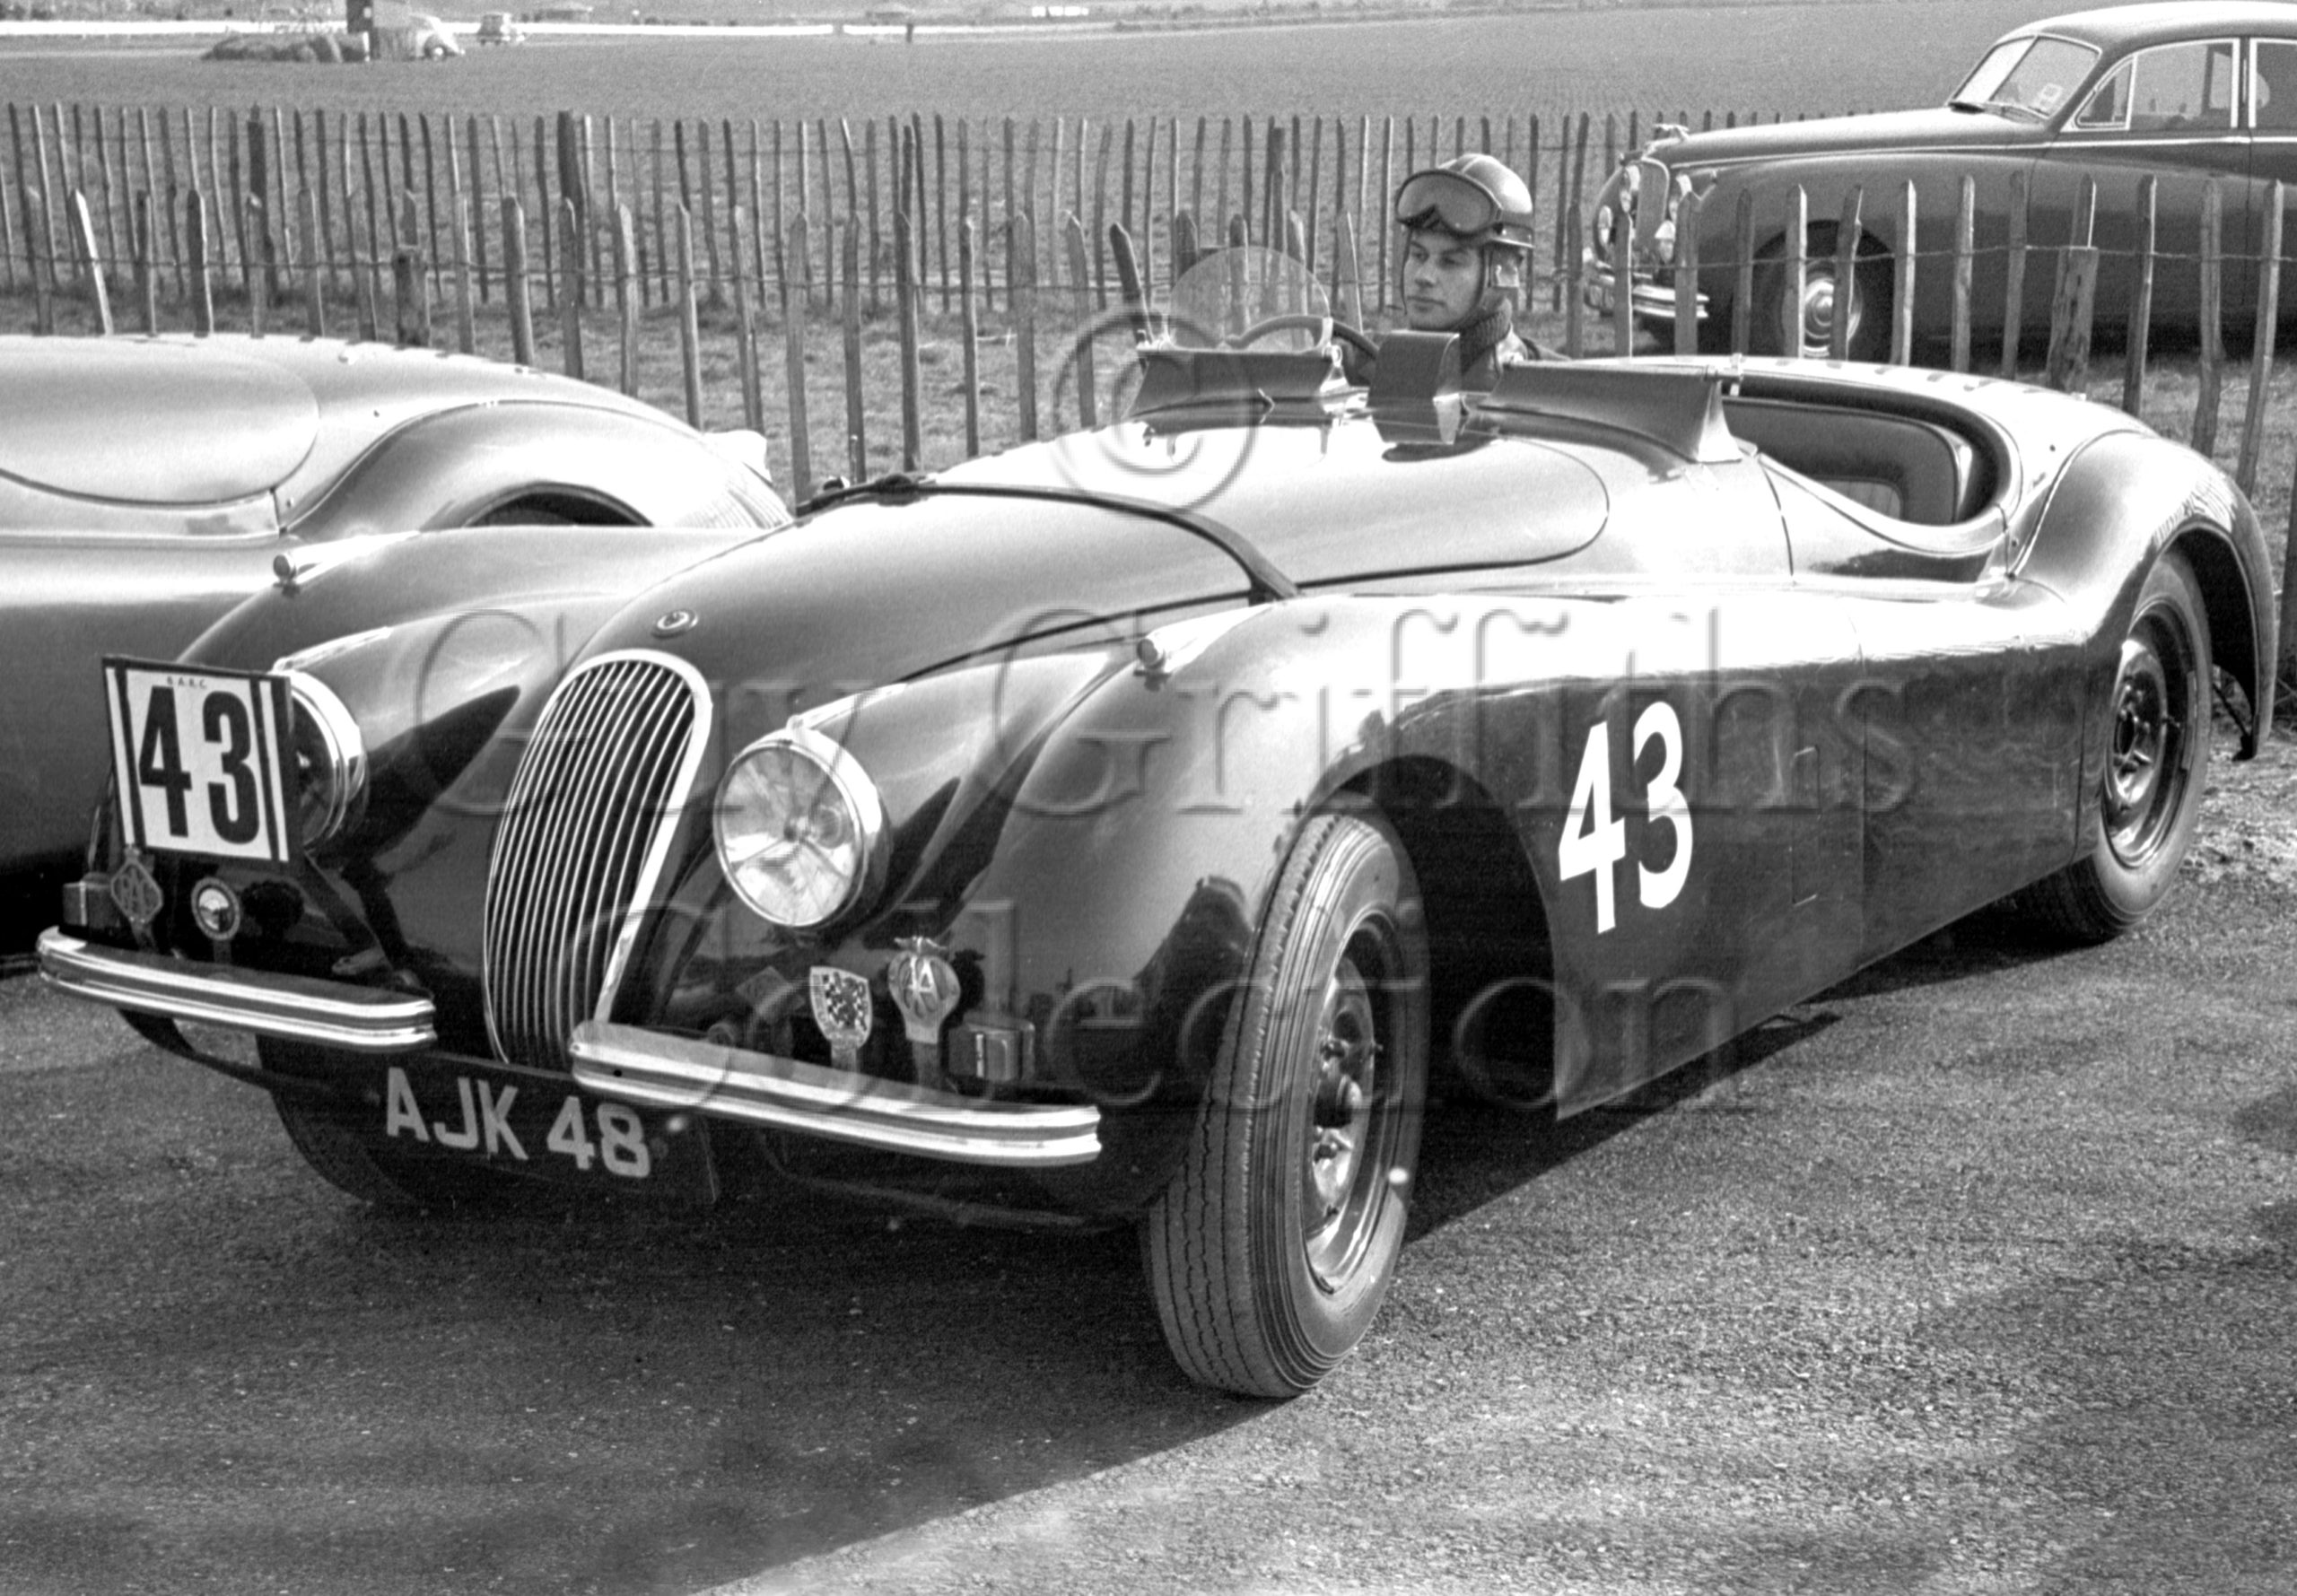 65-365–M-Levy–Jaguar-XK-120-AJK-48–Goodwood–21-03-1953.jpg - Guy Griffiths Collection